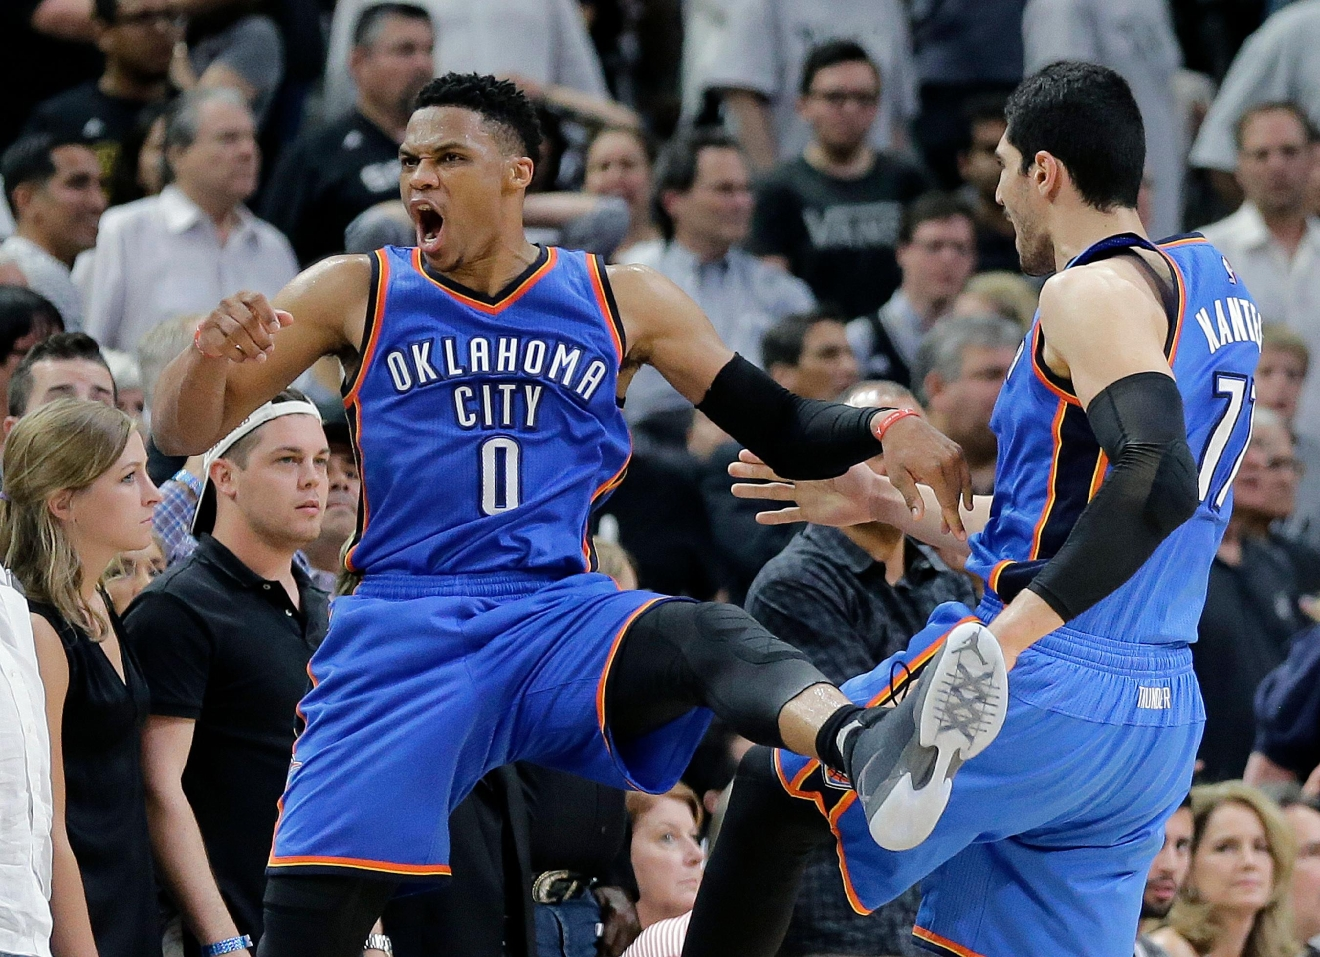 Oklahoma City Thunder guard Russell Westbrook (0) celebrates with teammate Enes Kanter (11) after he scored against the San Antonio Spurs during the final seconds of Game 5 of a second-round NBA basketball playoff series, Tuesday, May 10, 2016, in San Antonio. Oklahoma City won 95-91. (AP Photo/Eric Gay)